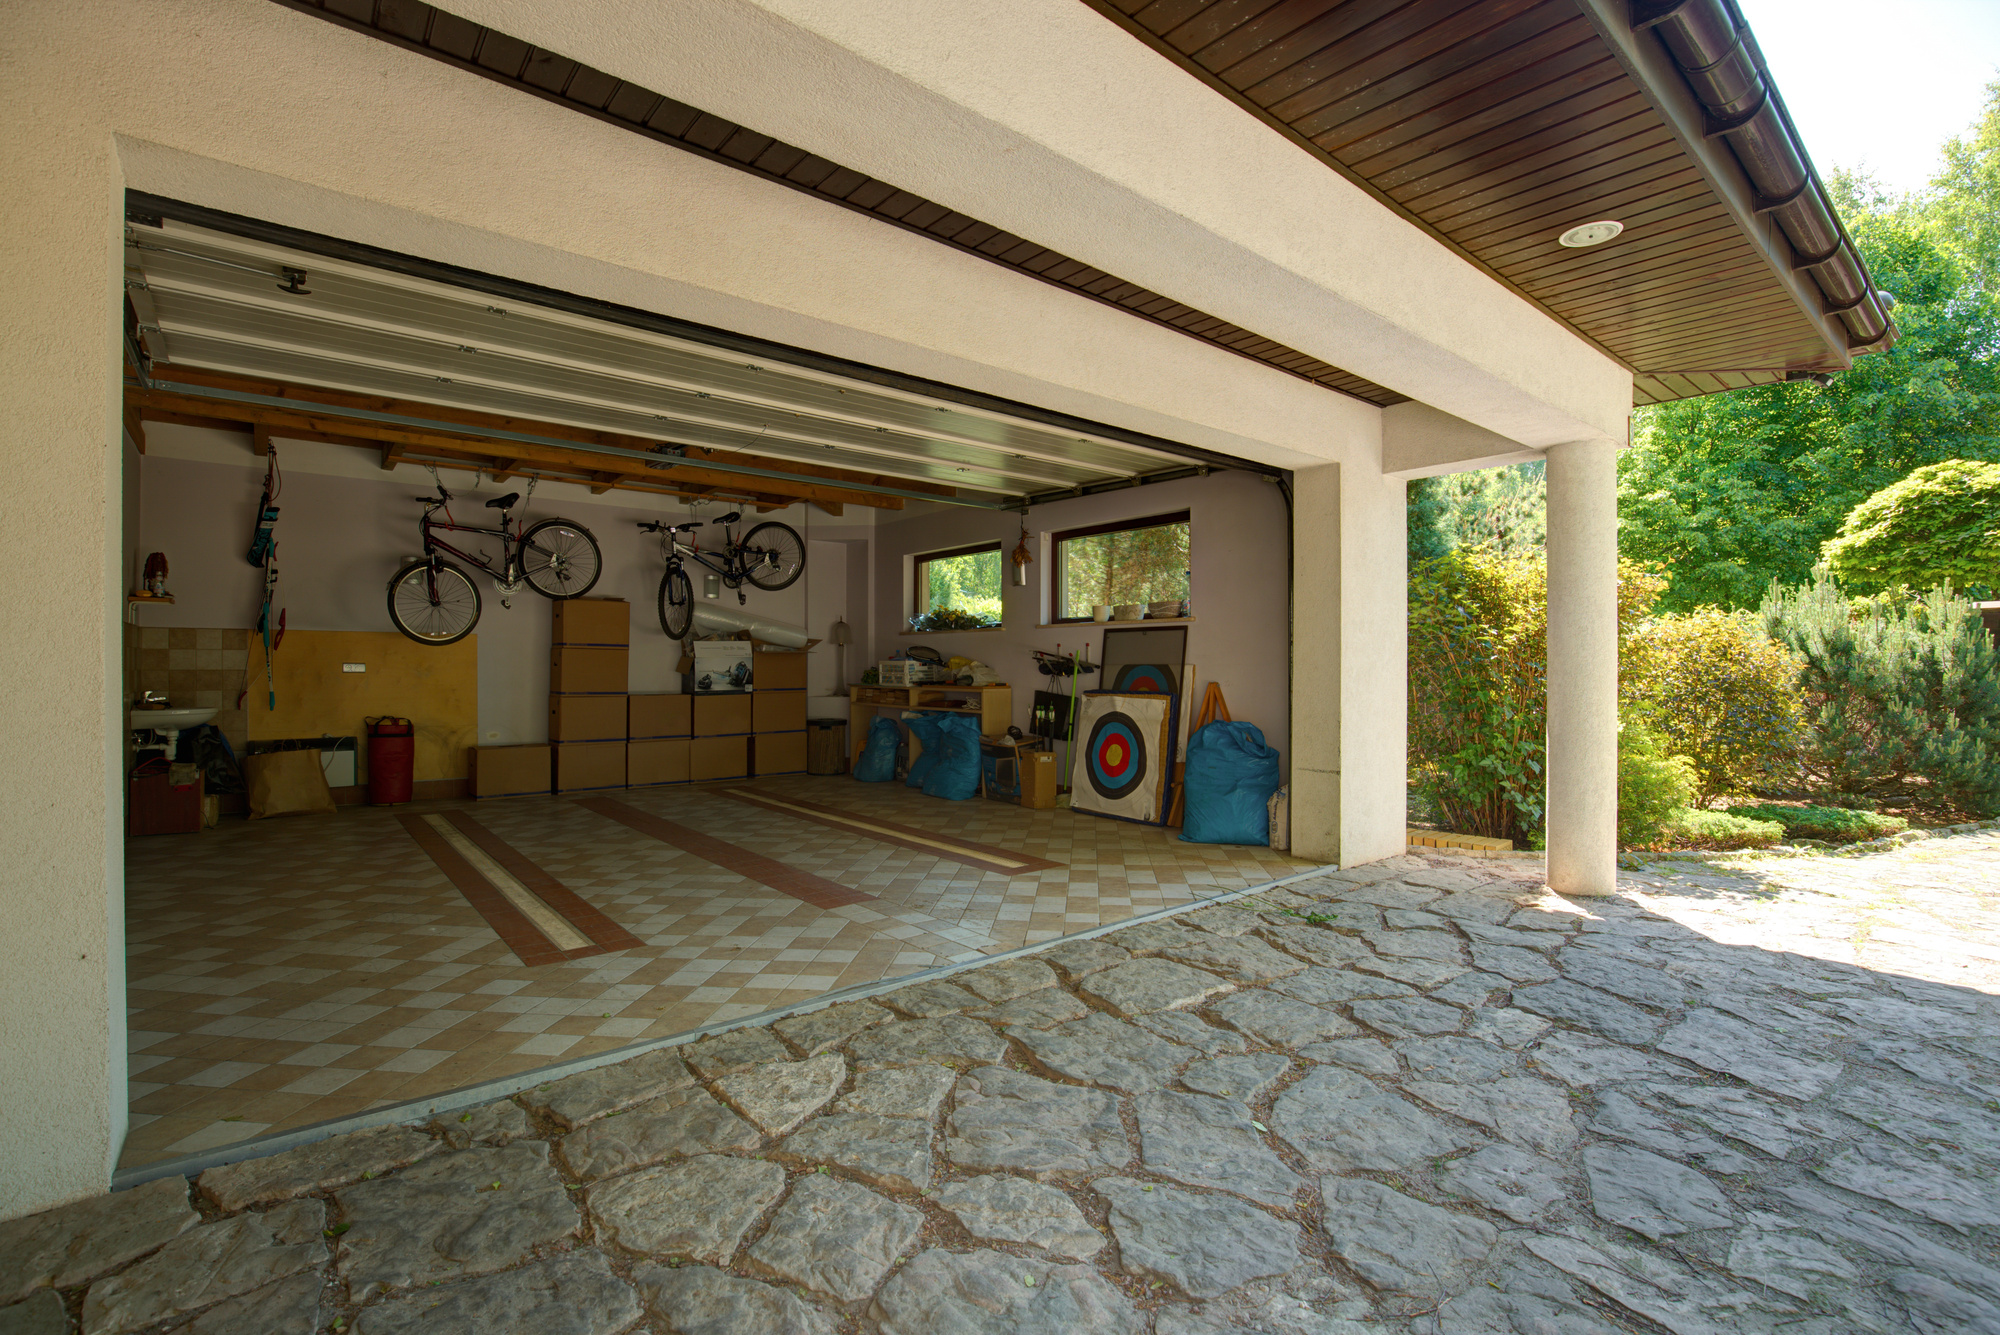 Top 10 Diy Garage Storage Ideas To Make Your Space Less Cluttered Interior Design Inspiration